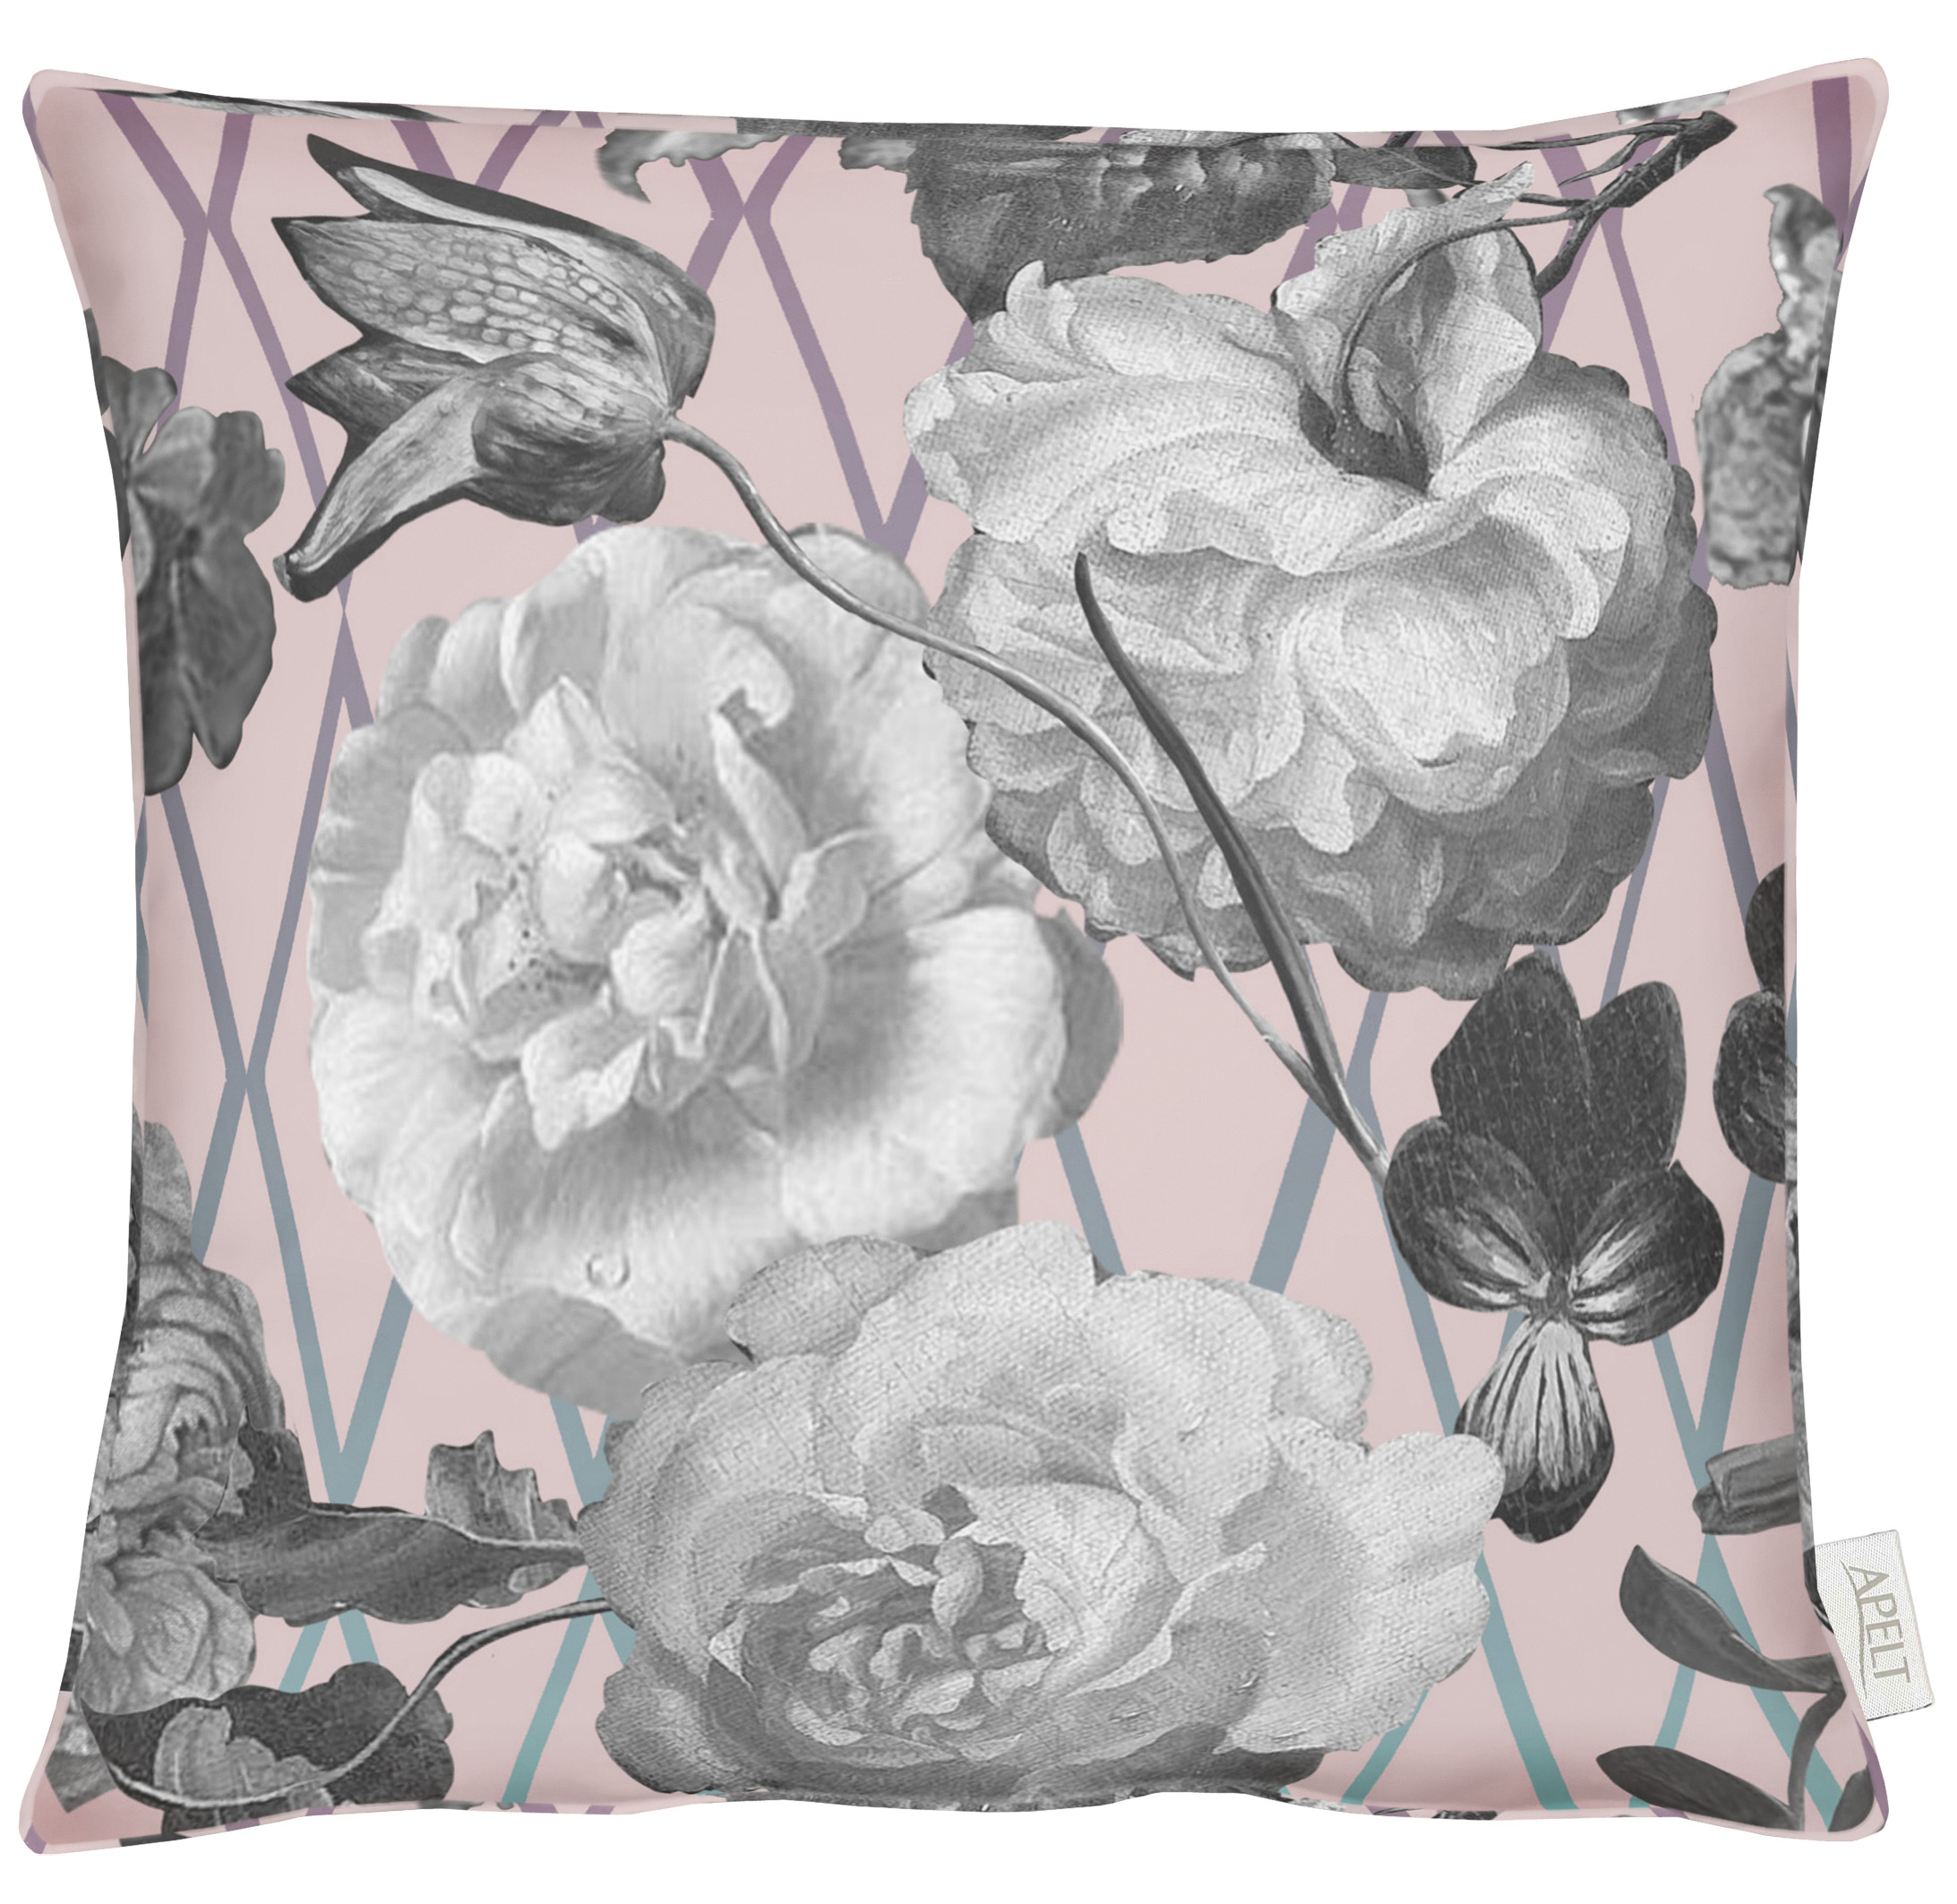 Sibylla Paris Pink Velvet Cushion 46x46cm